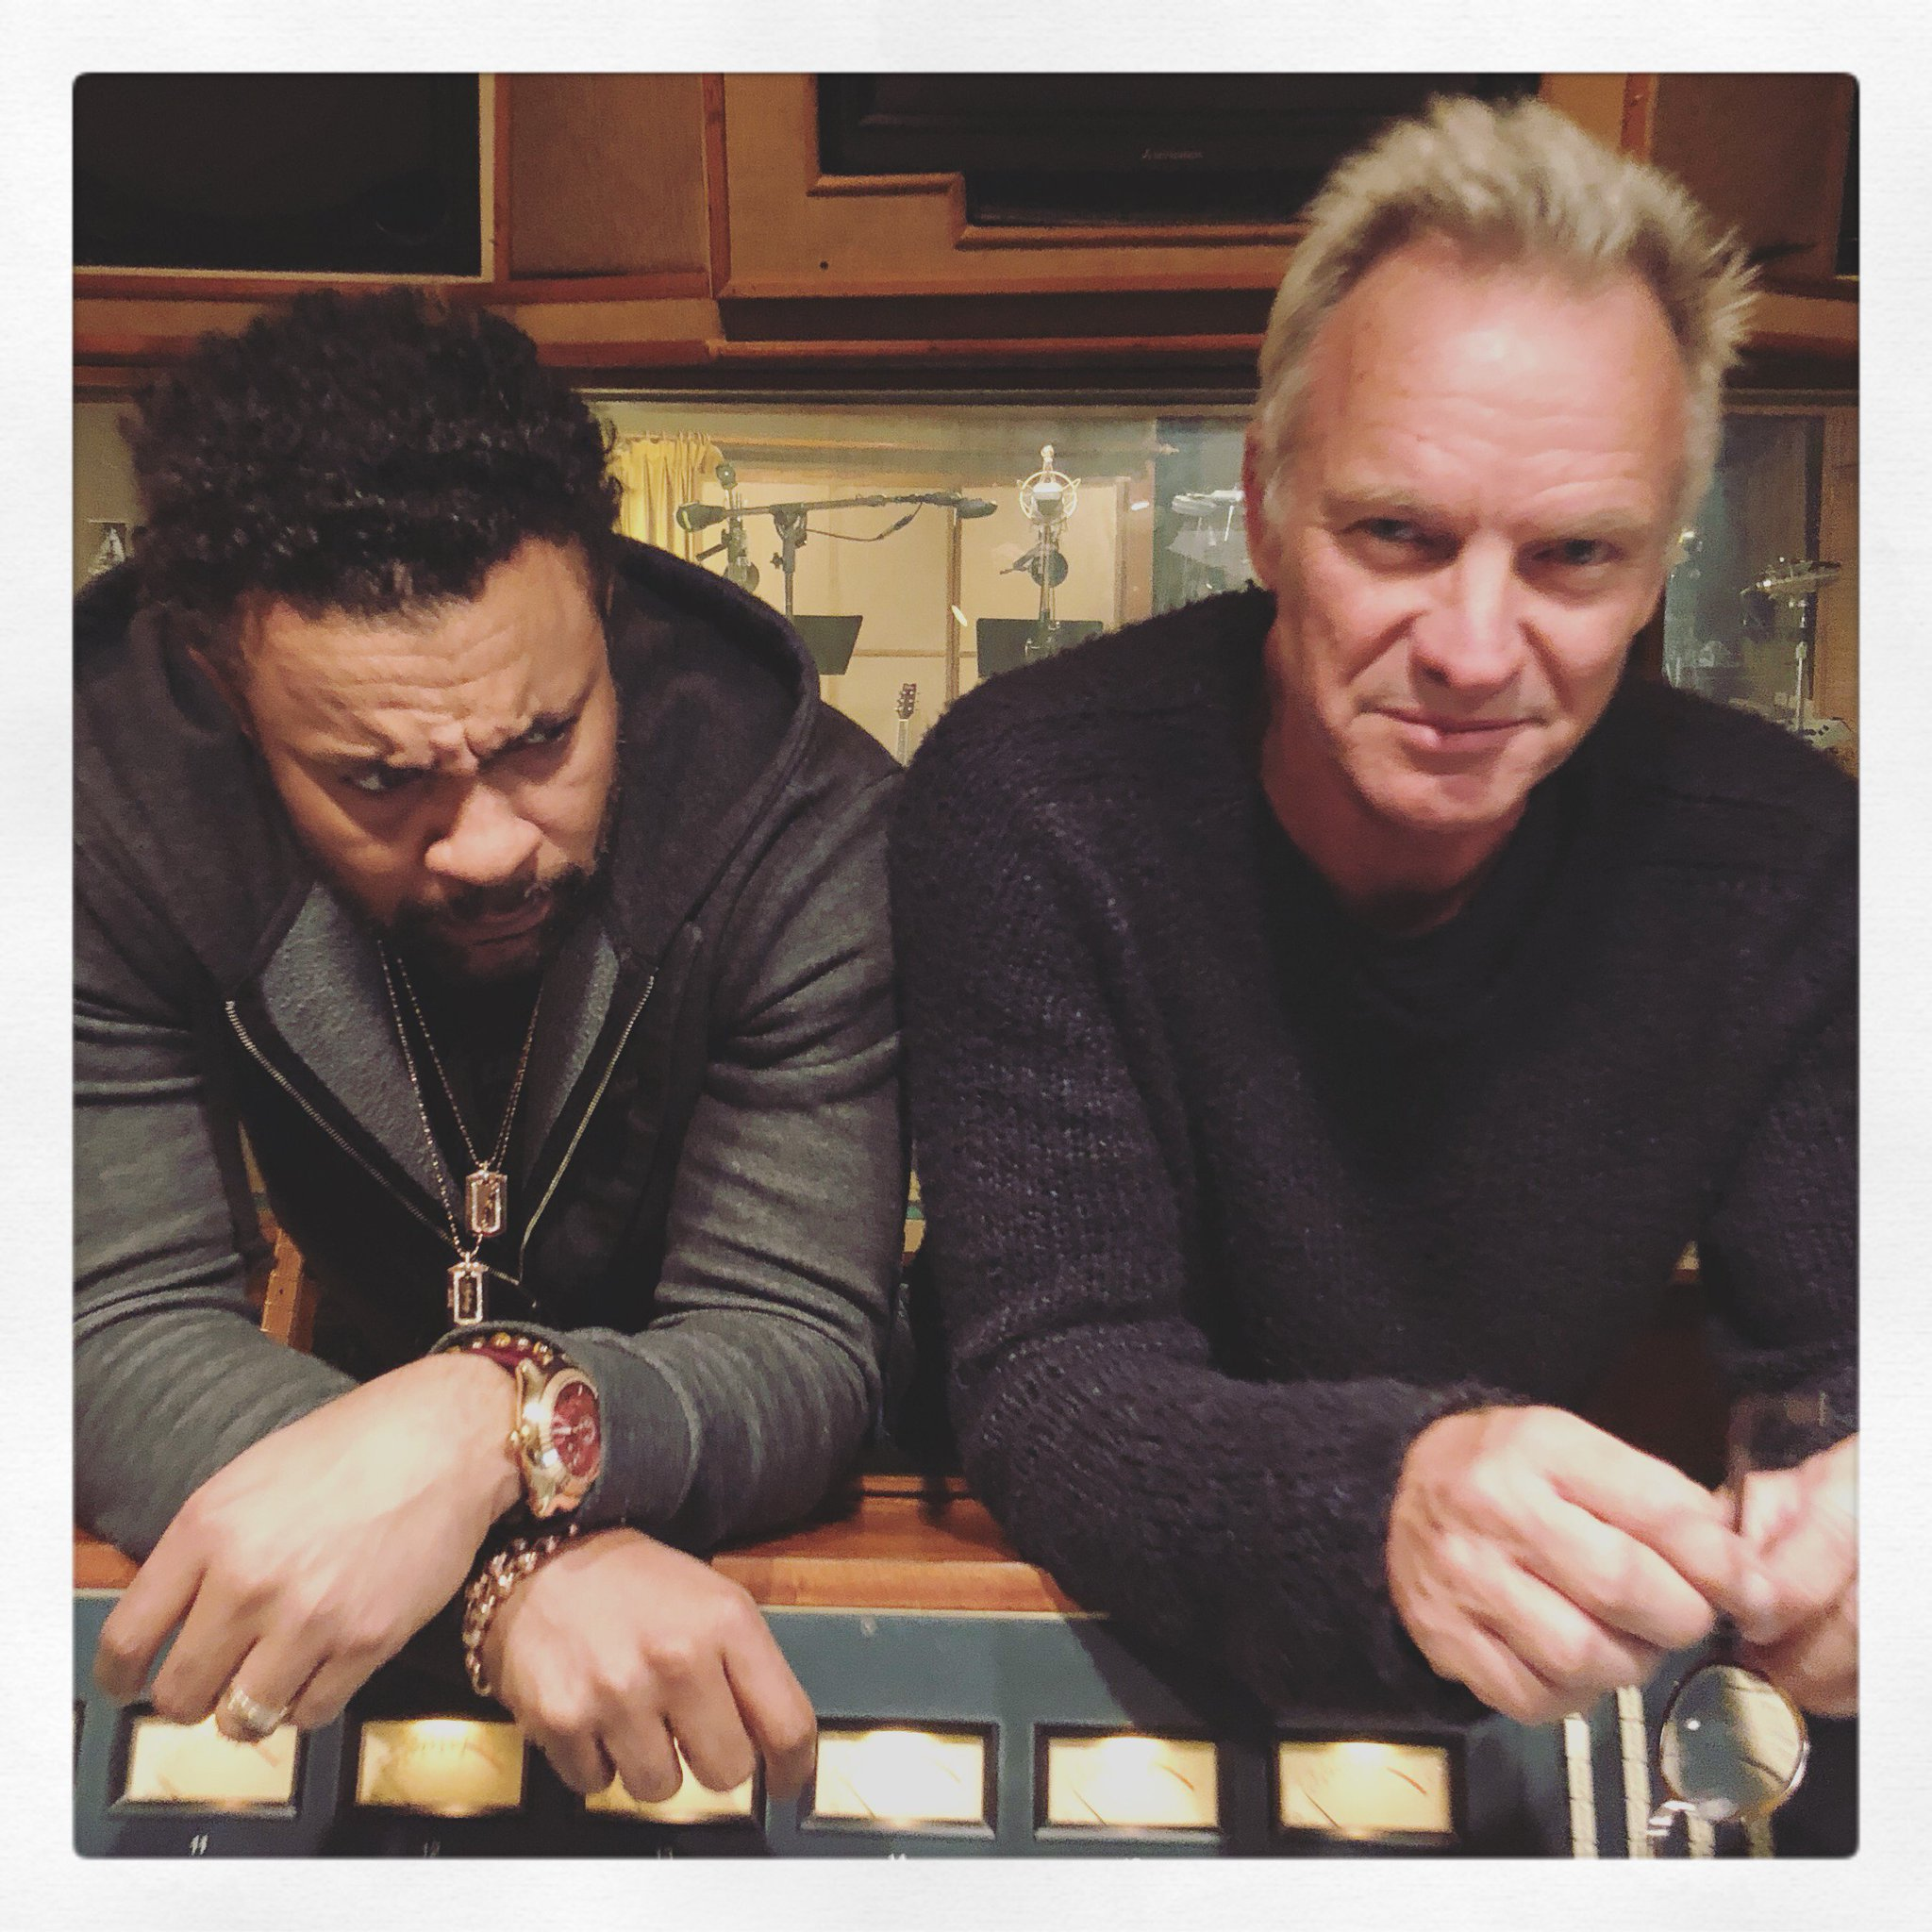 Having fun with @DiRealShaggy in the studio. Photo by @MKCherryBoom https://t.co/h5pzWbWIWE